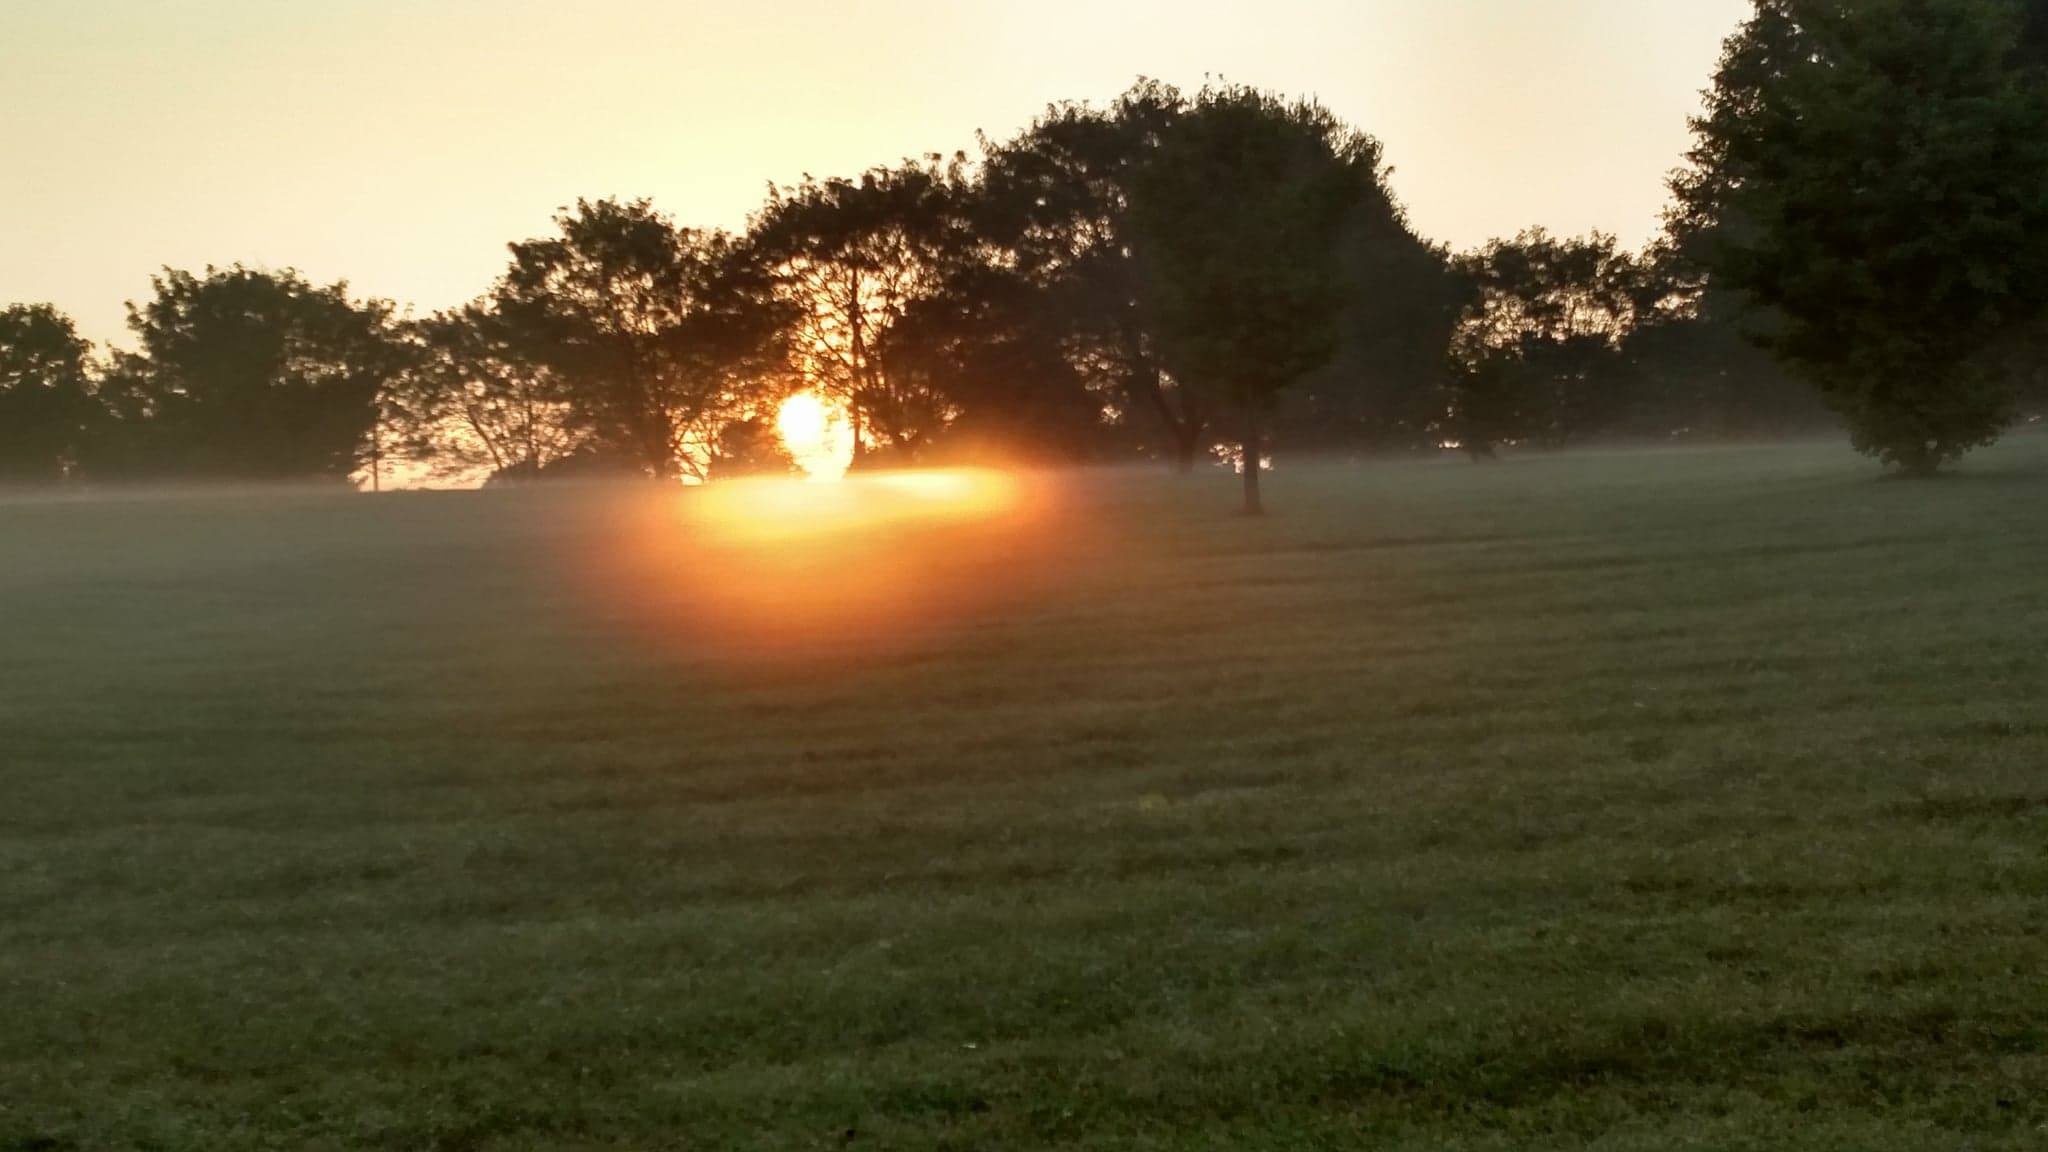 Dawn at Kirklevington Park, Lexington, KY. Photo credit: Leah D. Schade. All rights reserved.